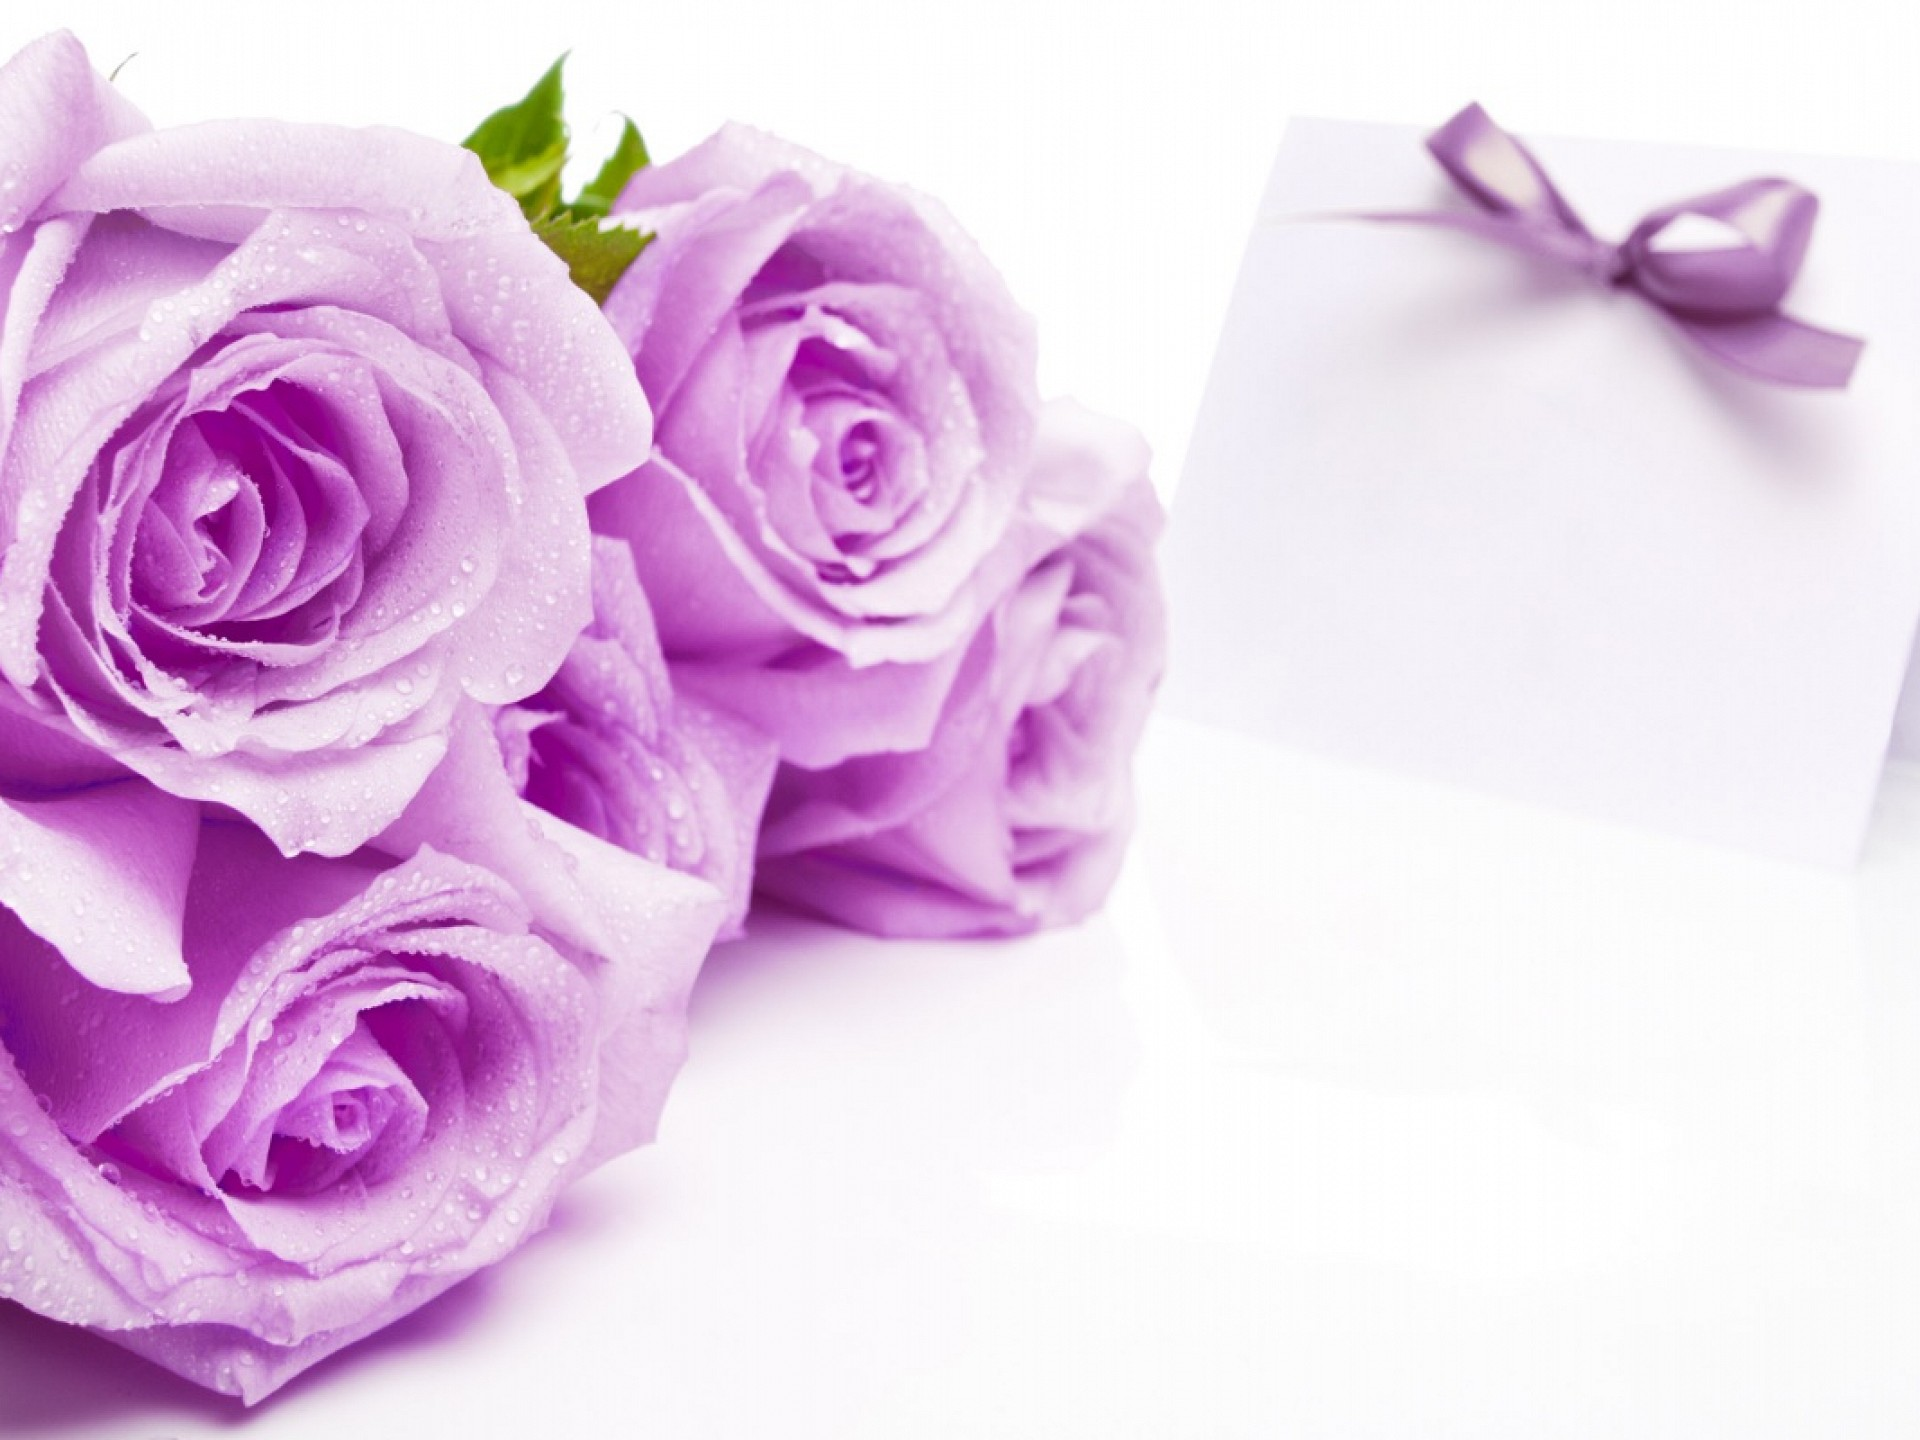 Roses Images Magnificent Purple HD Wallpaper And Background Photos